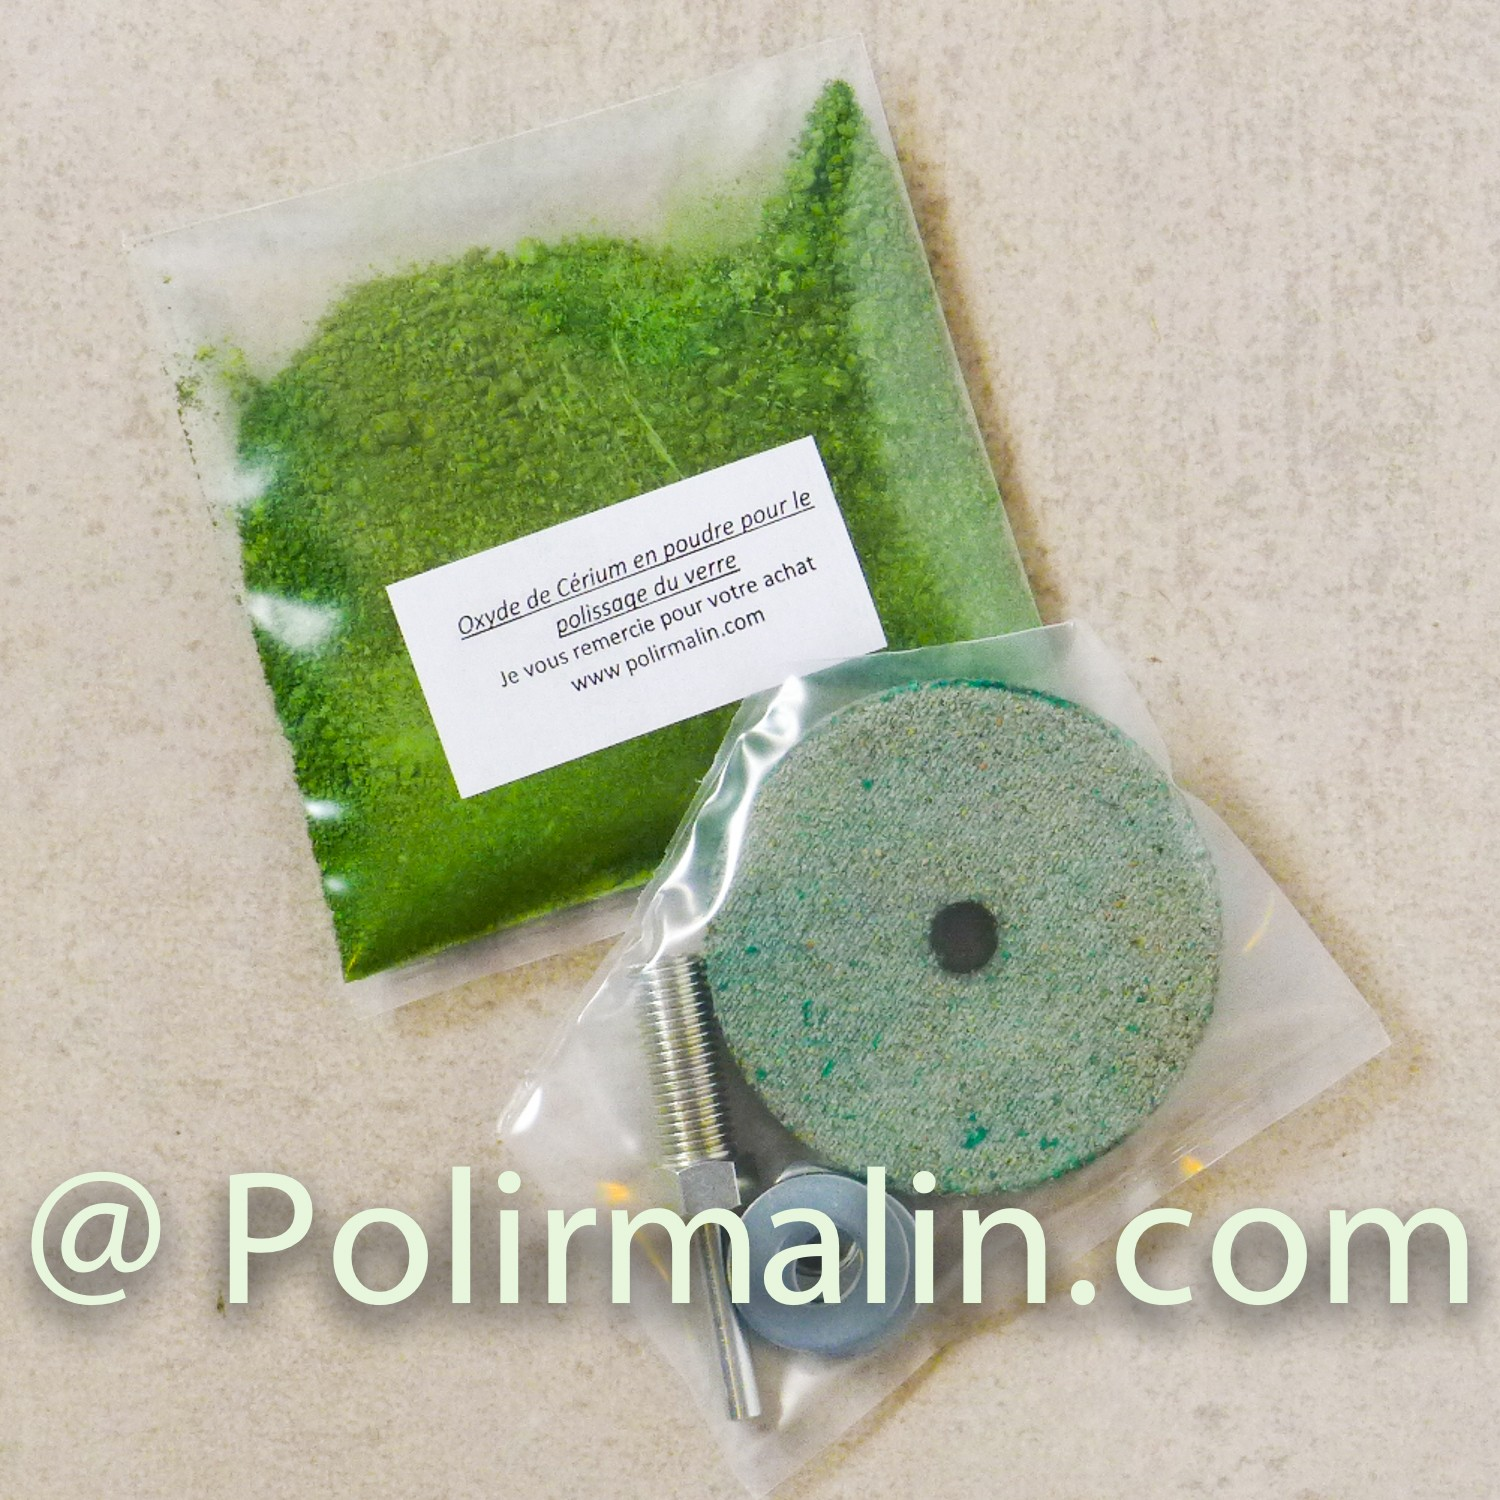 GLASS POLISHING REPAIR Kit